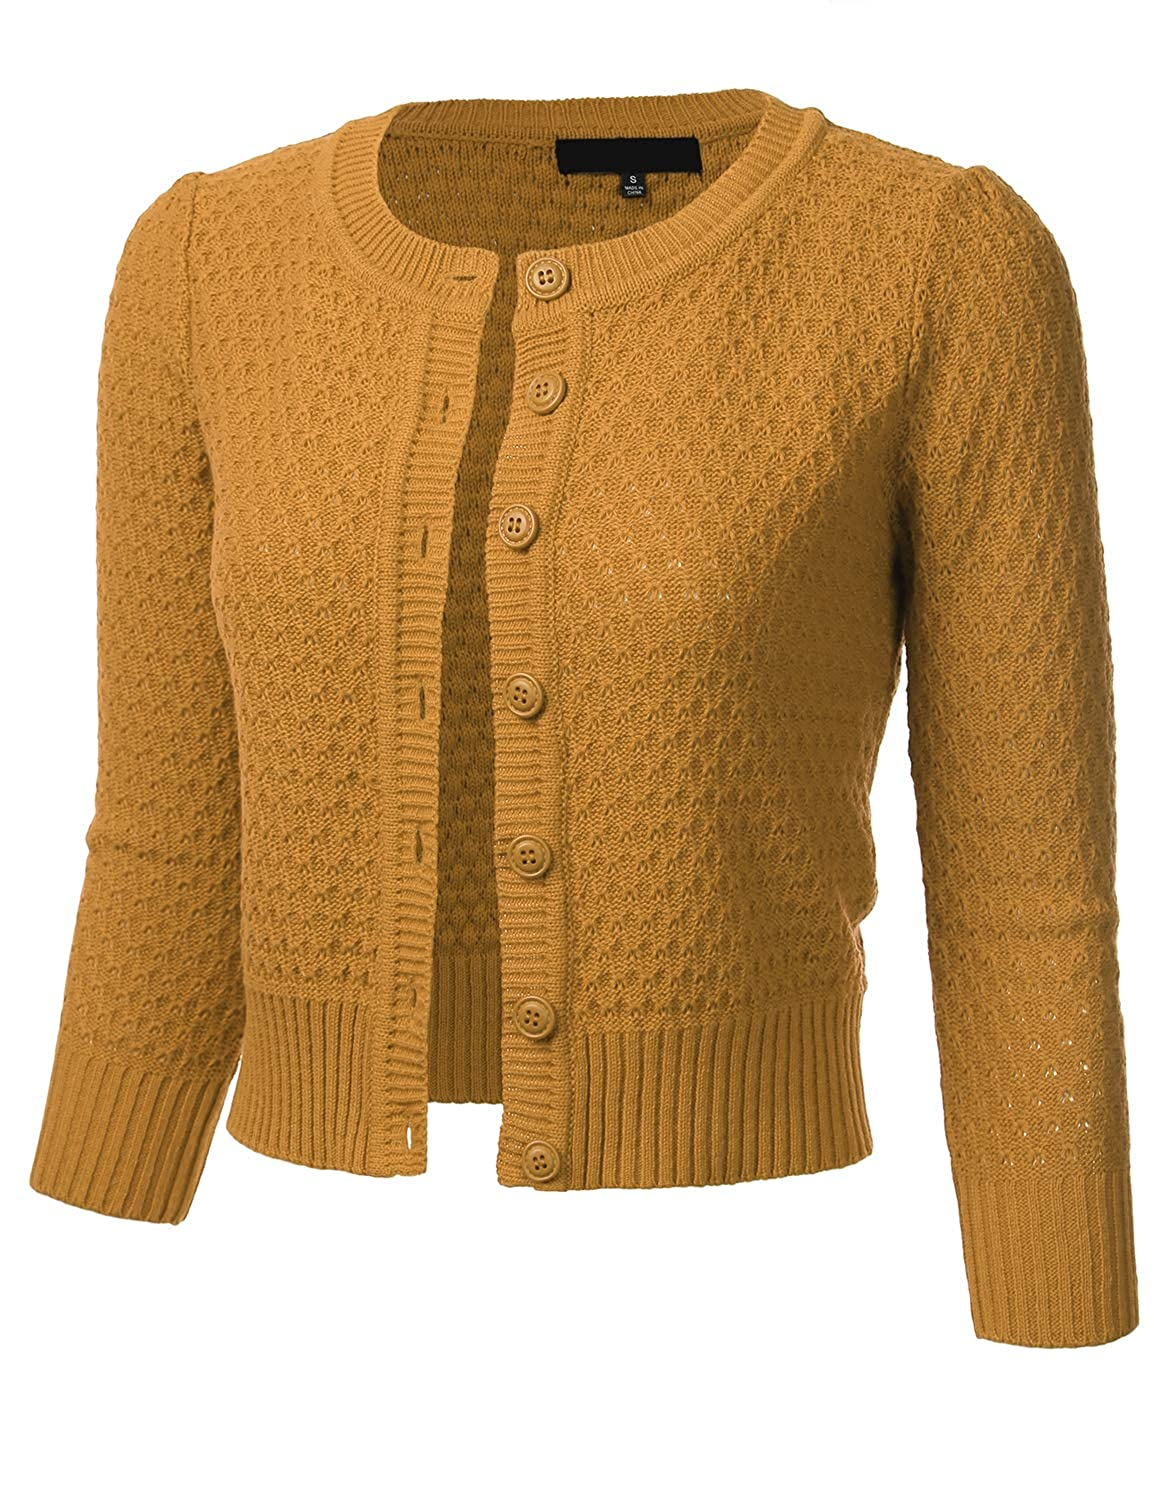 1940s Style Sweaters and Knit Tops FLORIA Womens Button Down 3/4 Sleeve Crew Neck Cotton Knit Cropped Cardigan Sweater (S-3X) $24.99 AT vintagedancer.com